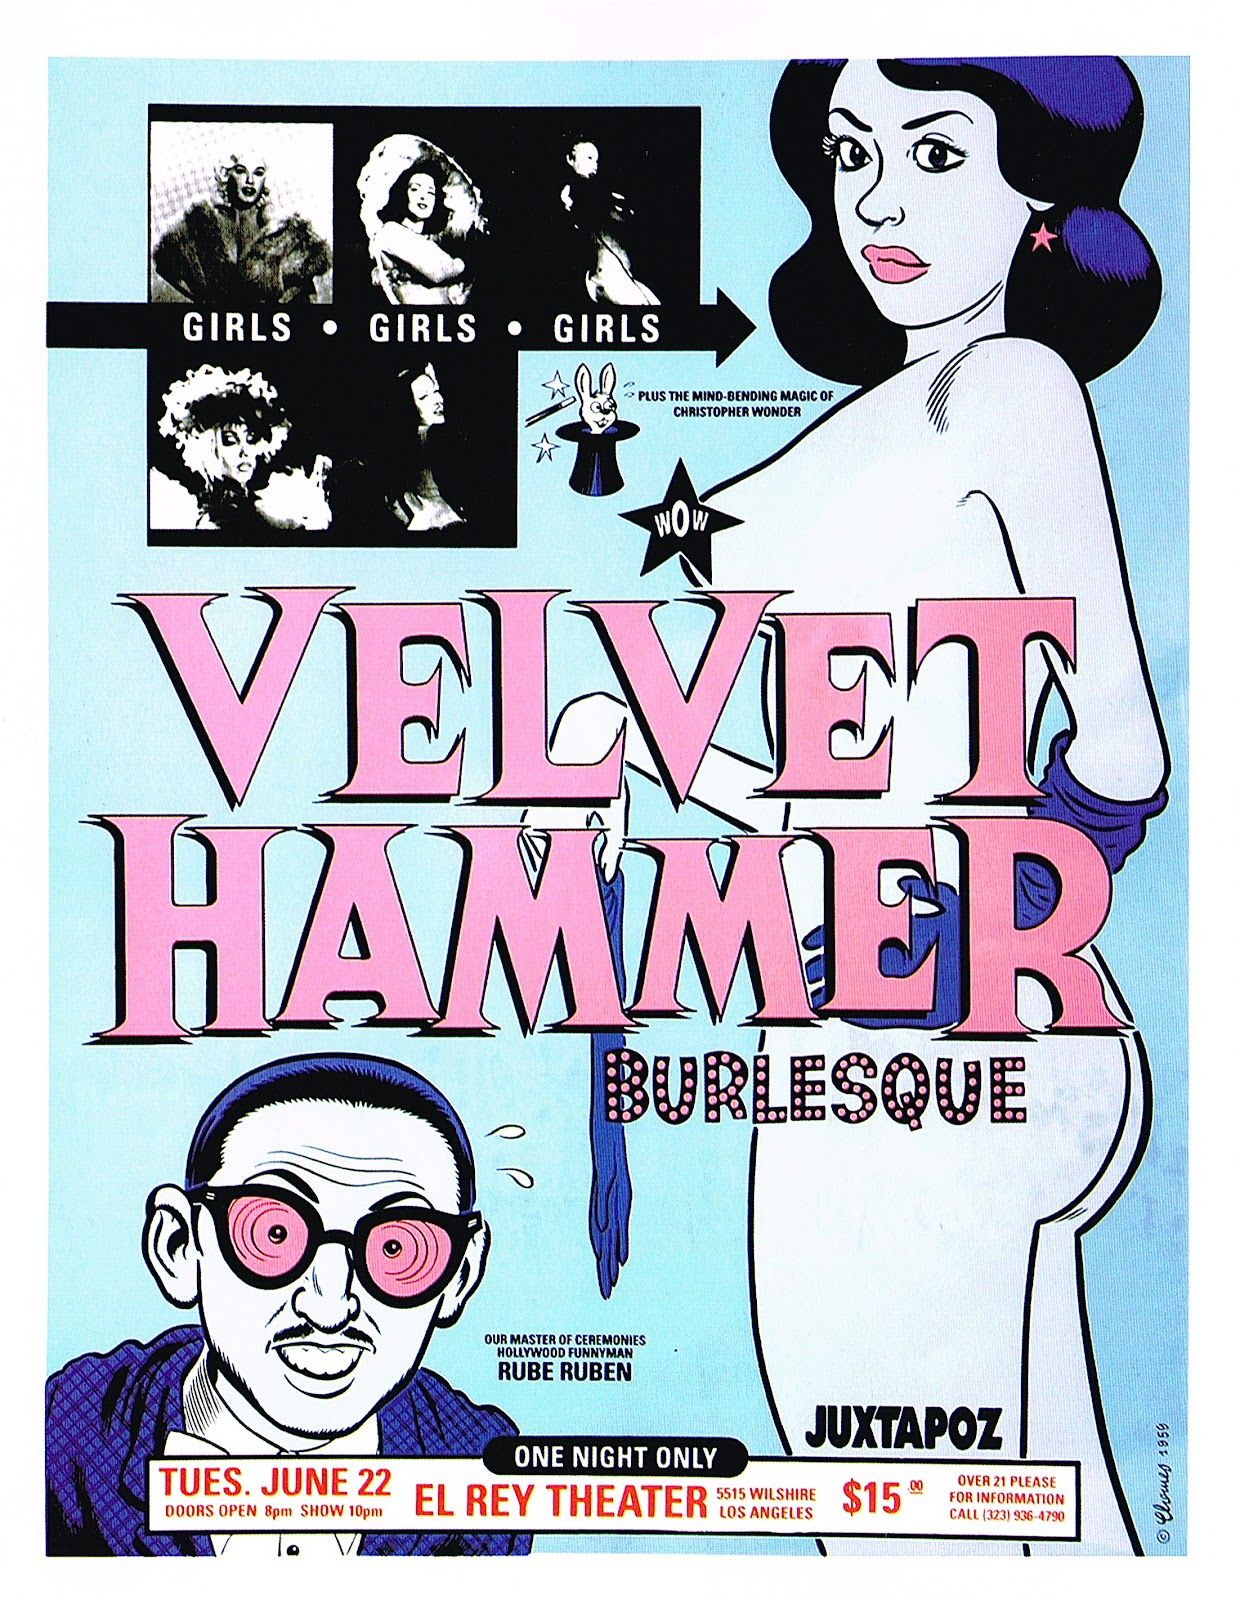 The Velvet Hammer Burlesque no El Rey Theater, por Daniel Clowes